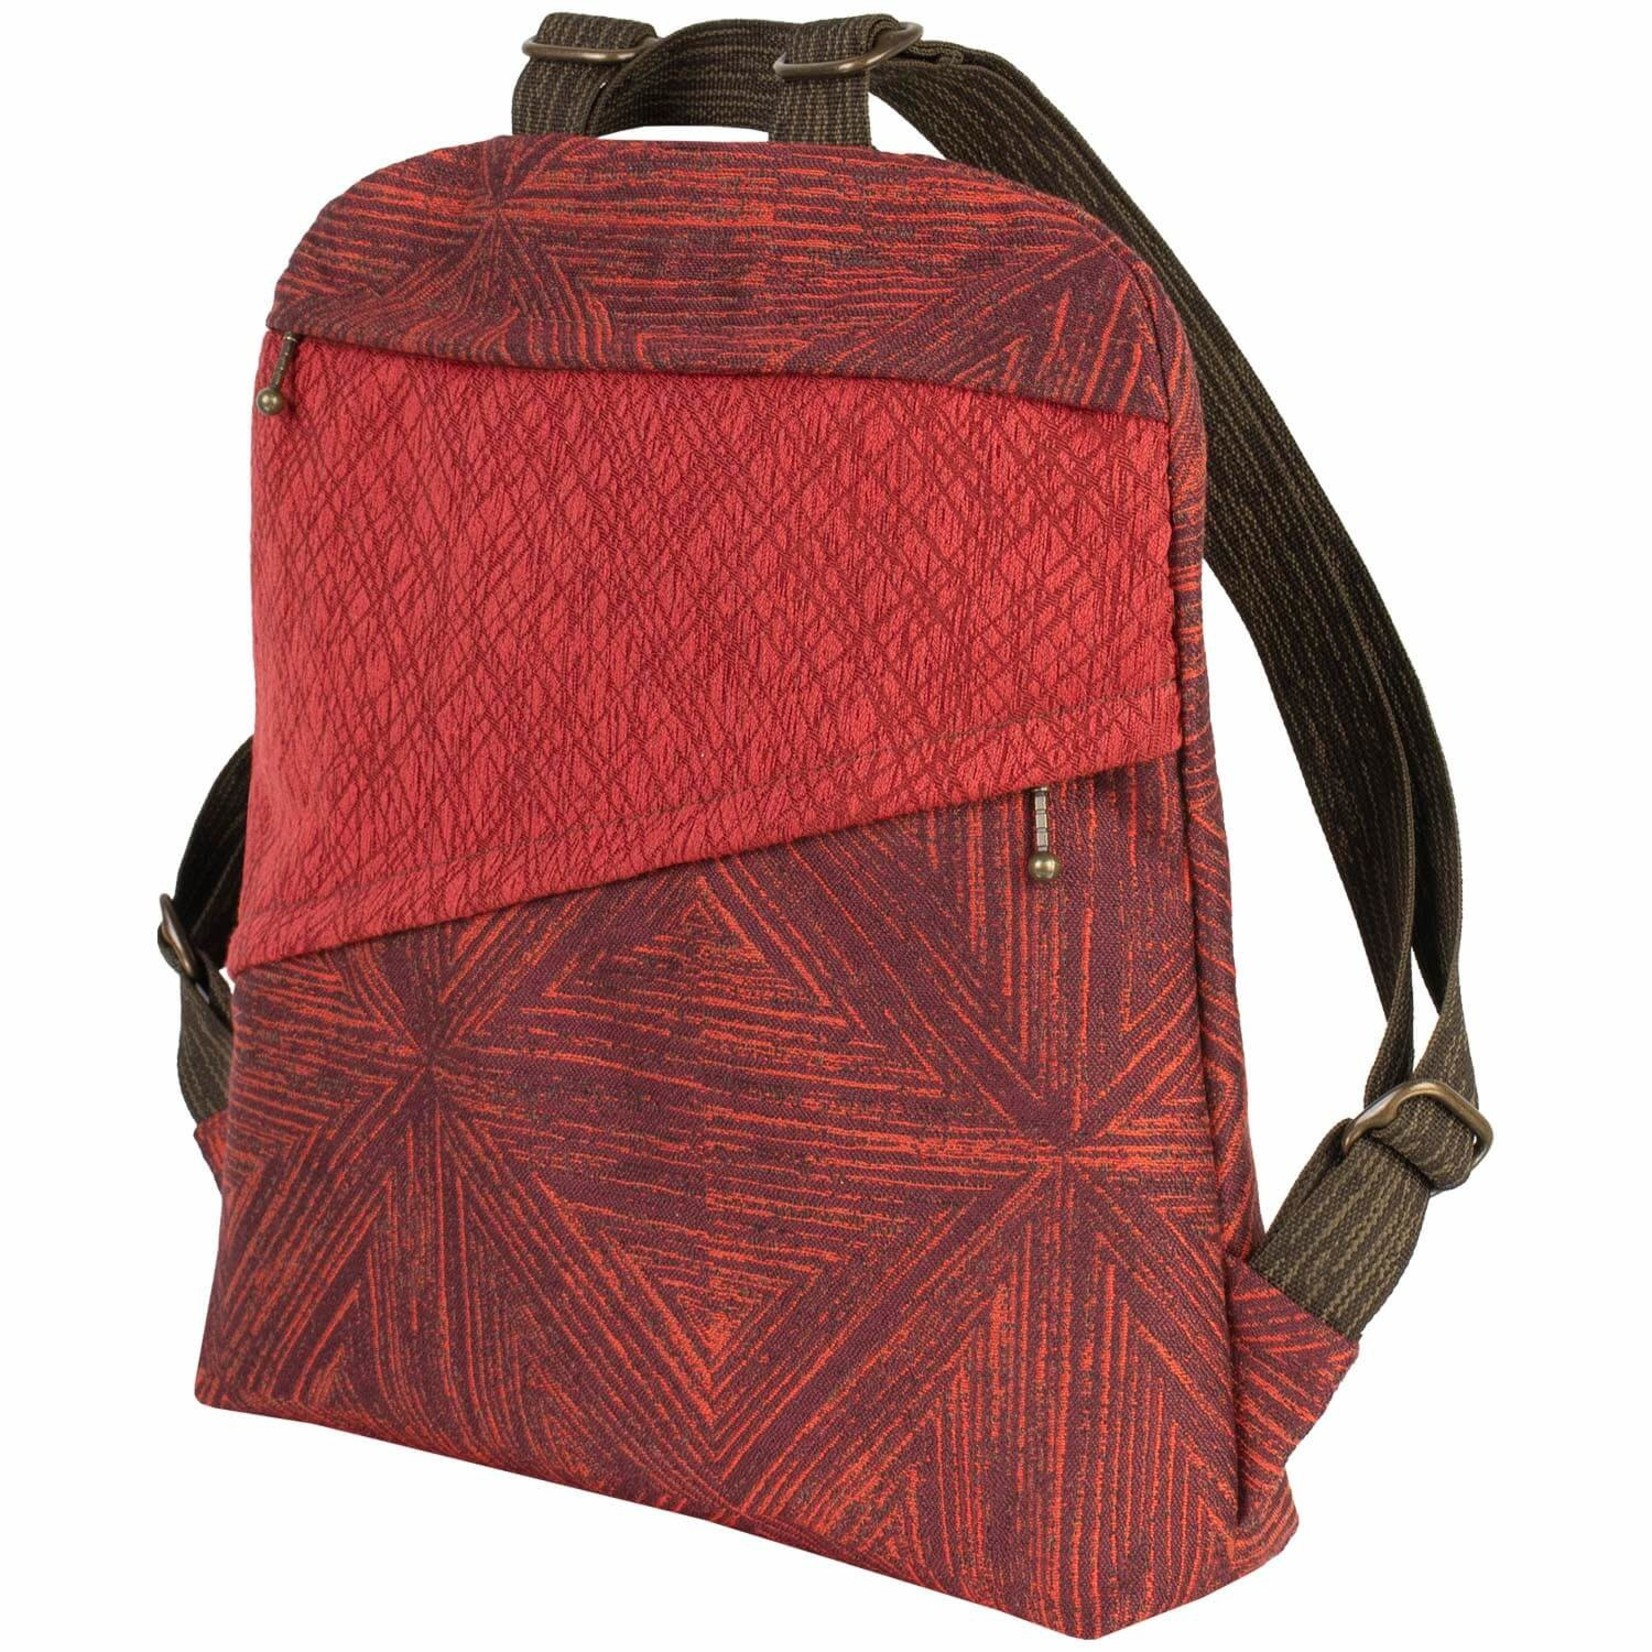 Maruca Lady Bird Backpack FW21 - Heartwood Red